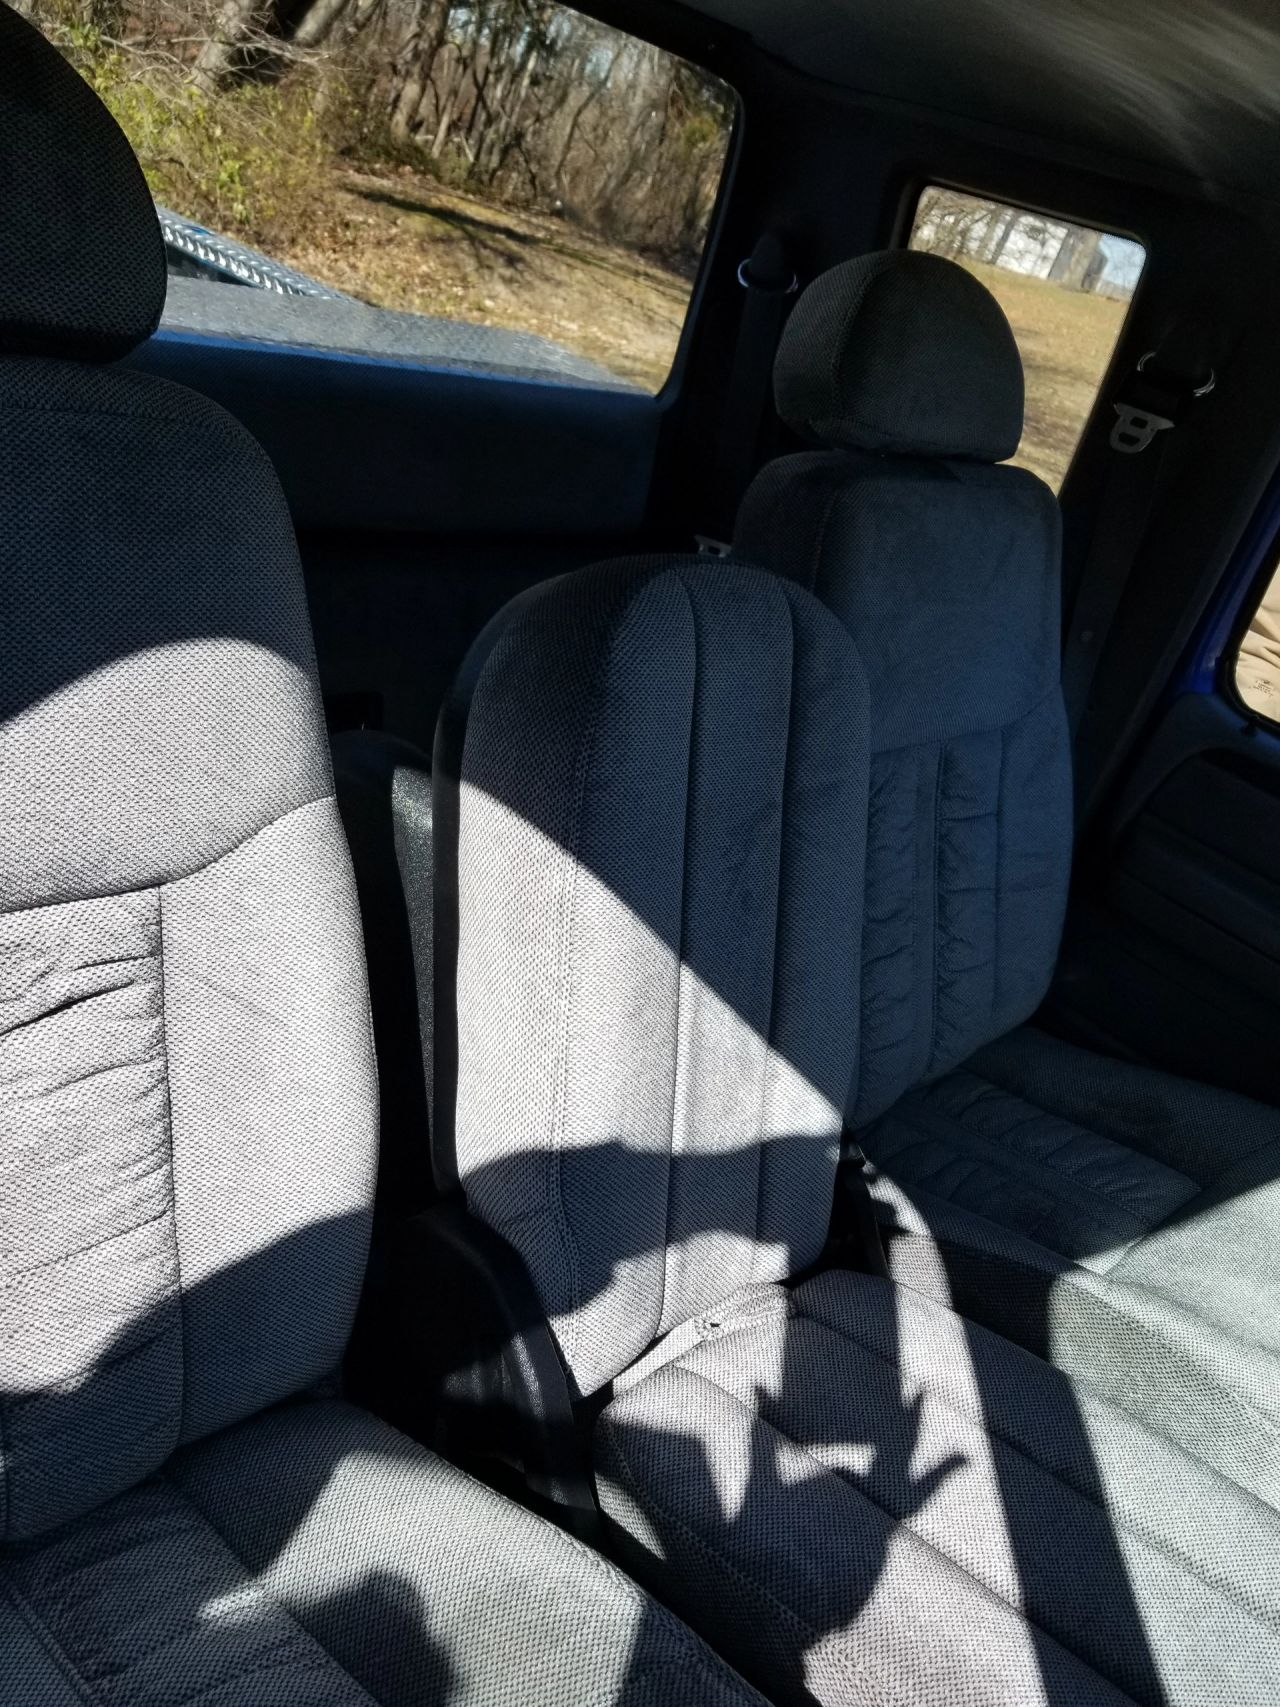 Superb 8 97 F250 Interior Caraccident5 Cool Chair Designs And Ideas Caraccident5Info